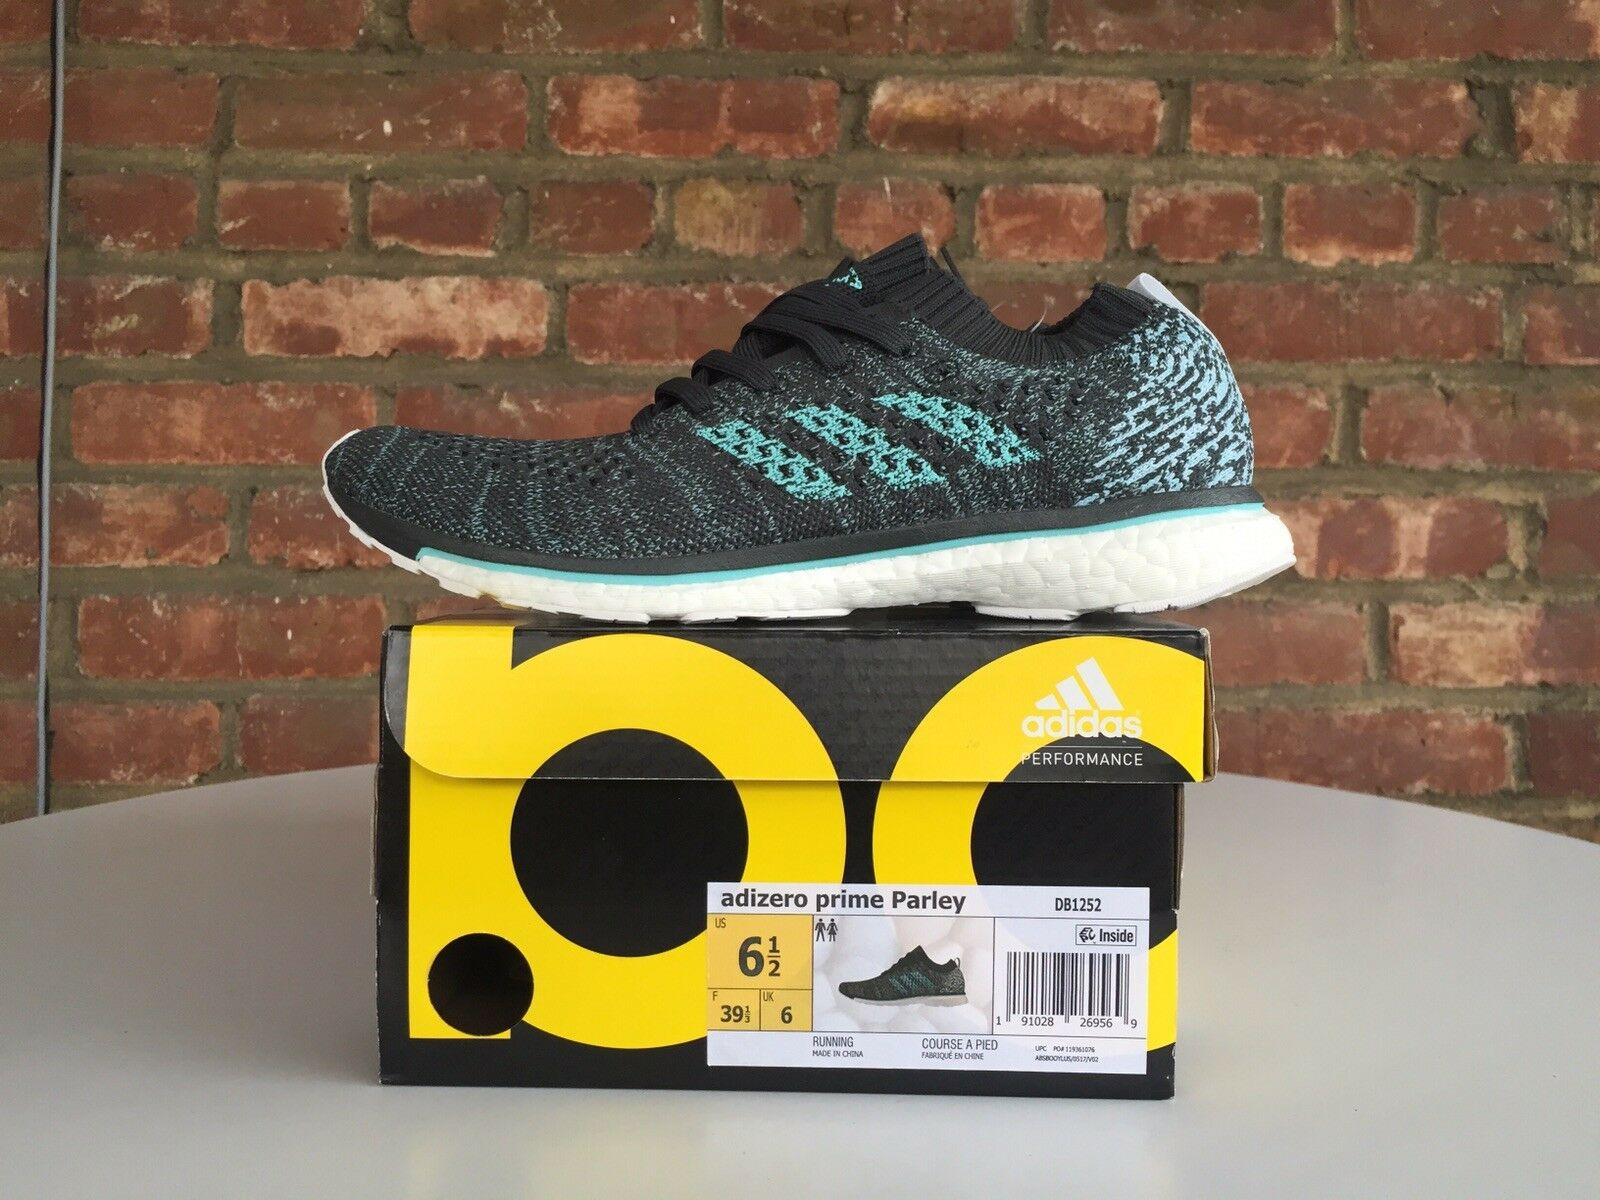 Adidas Boost Adizero Prime Parley Running Save the Oceans DB1252 ultra Boston